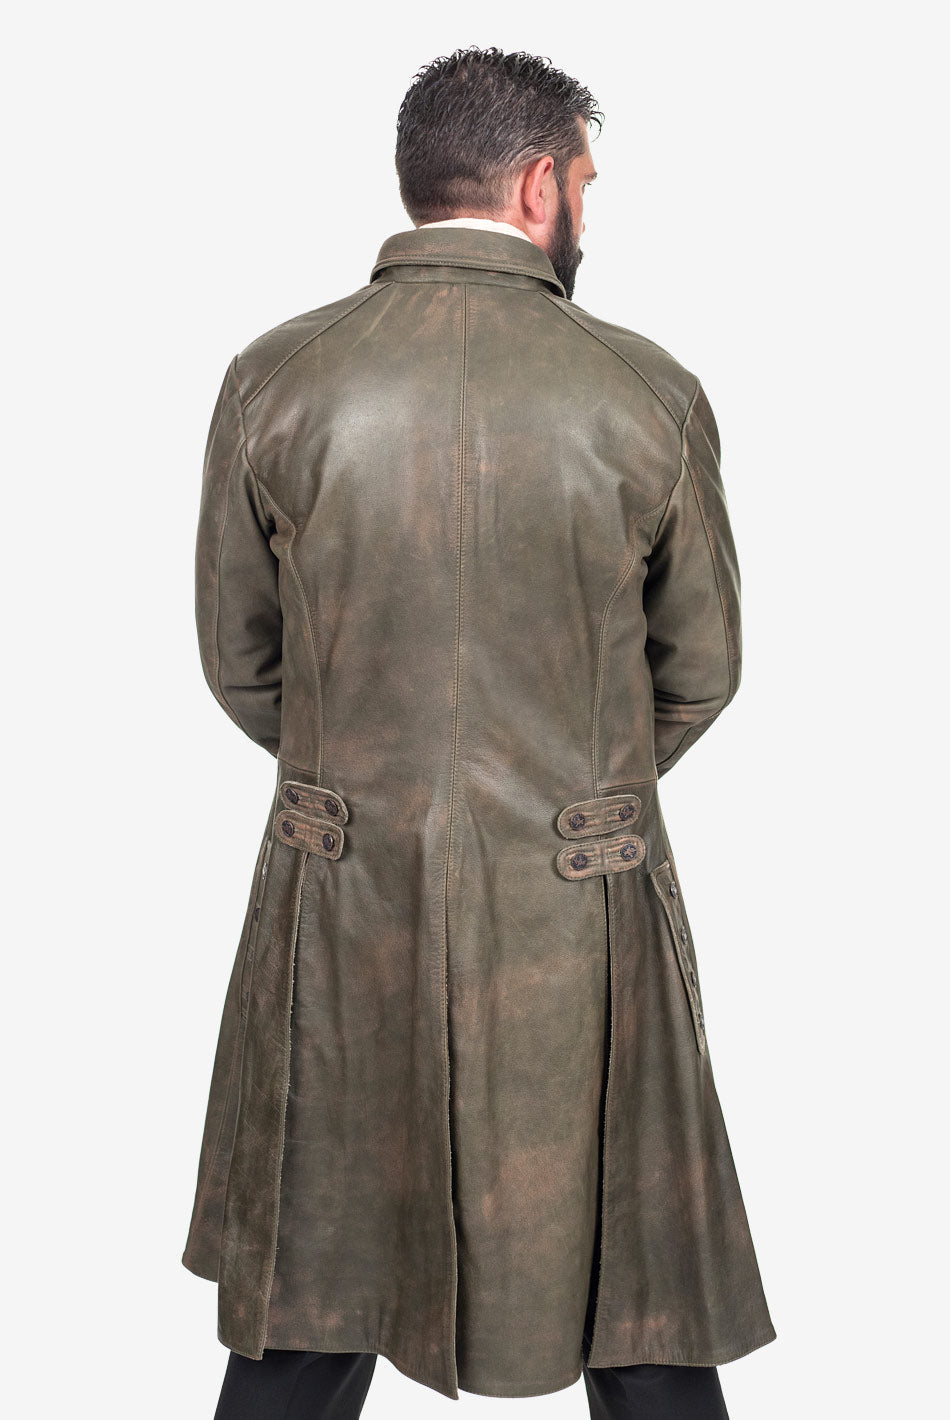 Jamie Fraser's Leather Coat